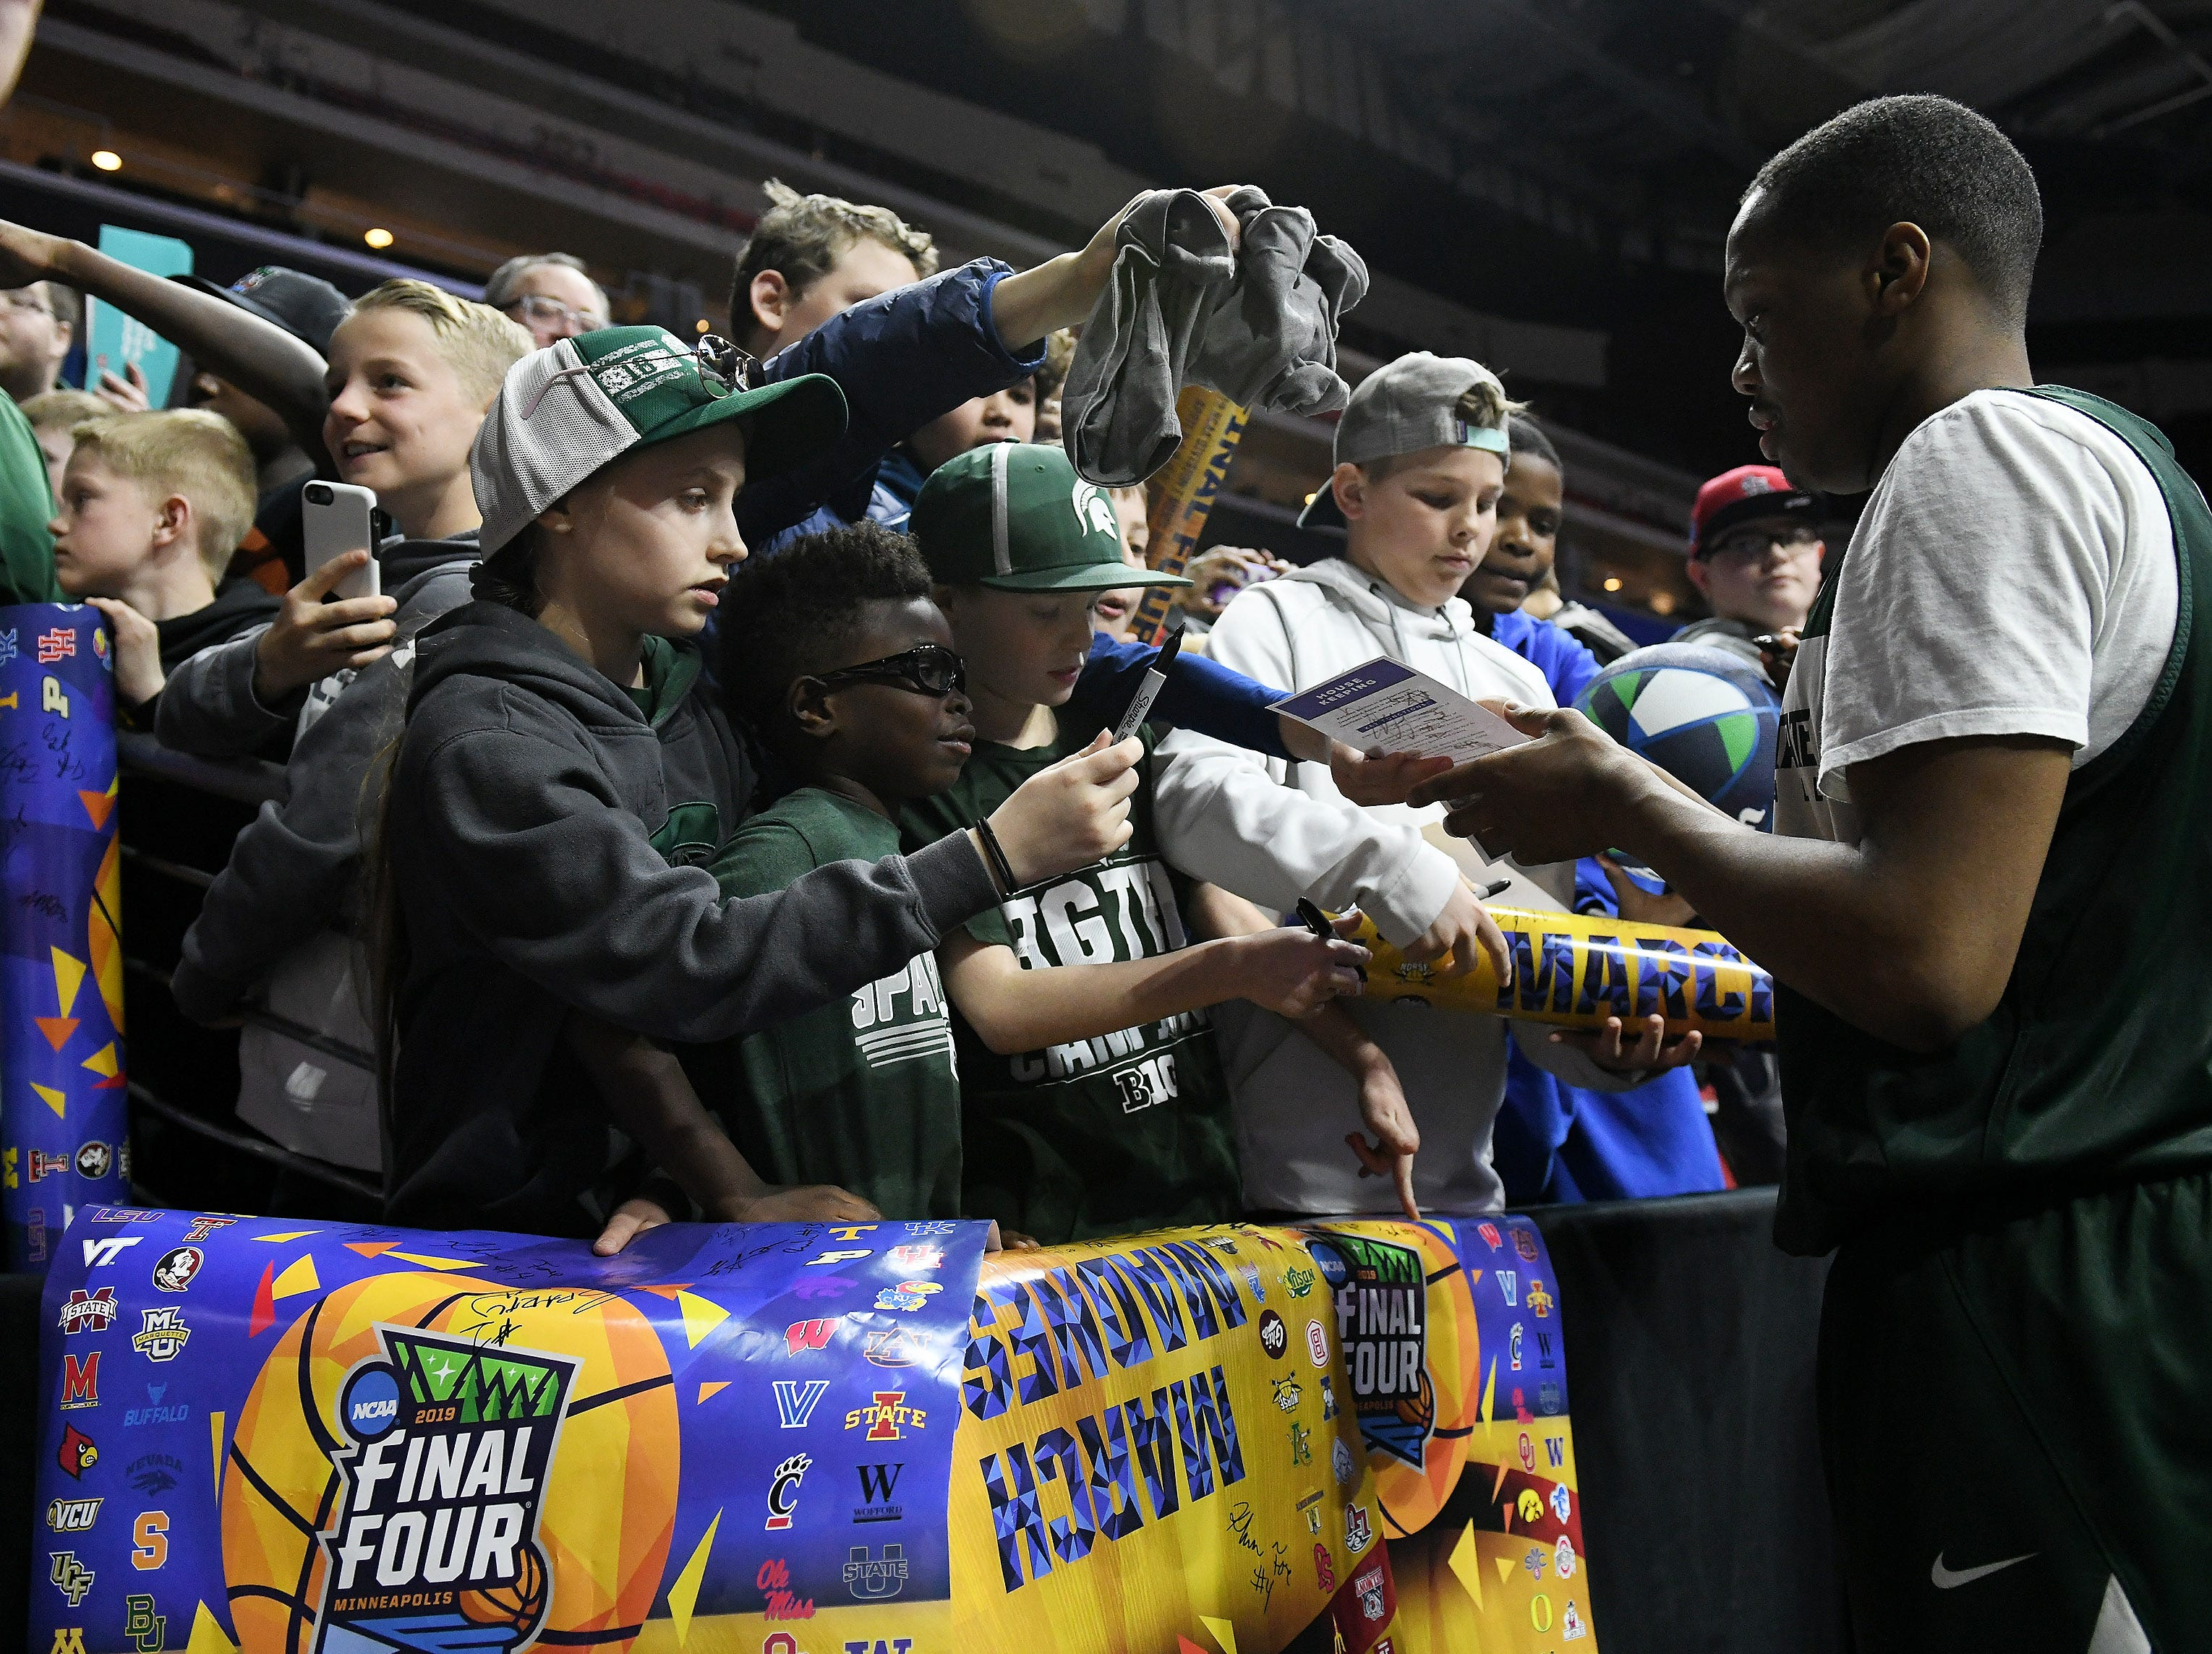 Michigan State guard Cassius Winston (5) signs autographs after Michigan State practice. Open practice day for Round 1 of the NCAA Tournament at Wells Fargo Arena in Des Moines, Iowa on March. 20, 2019.   